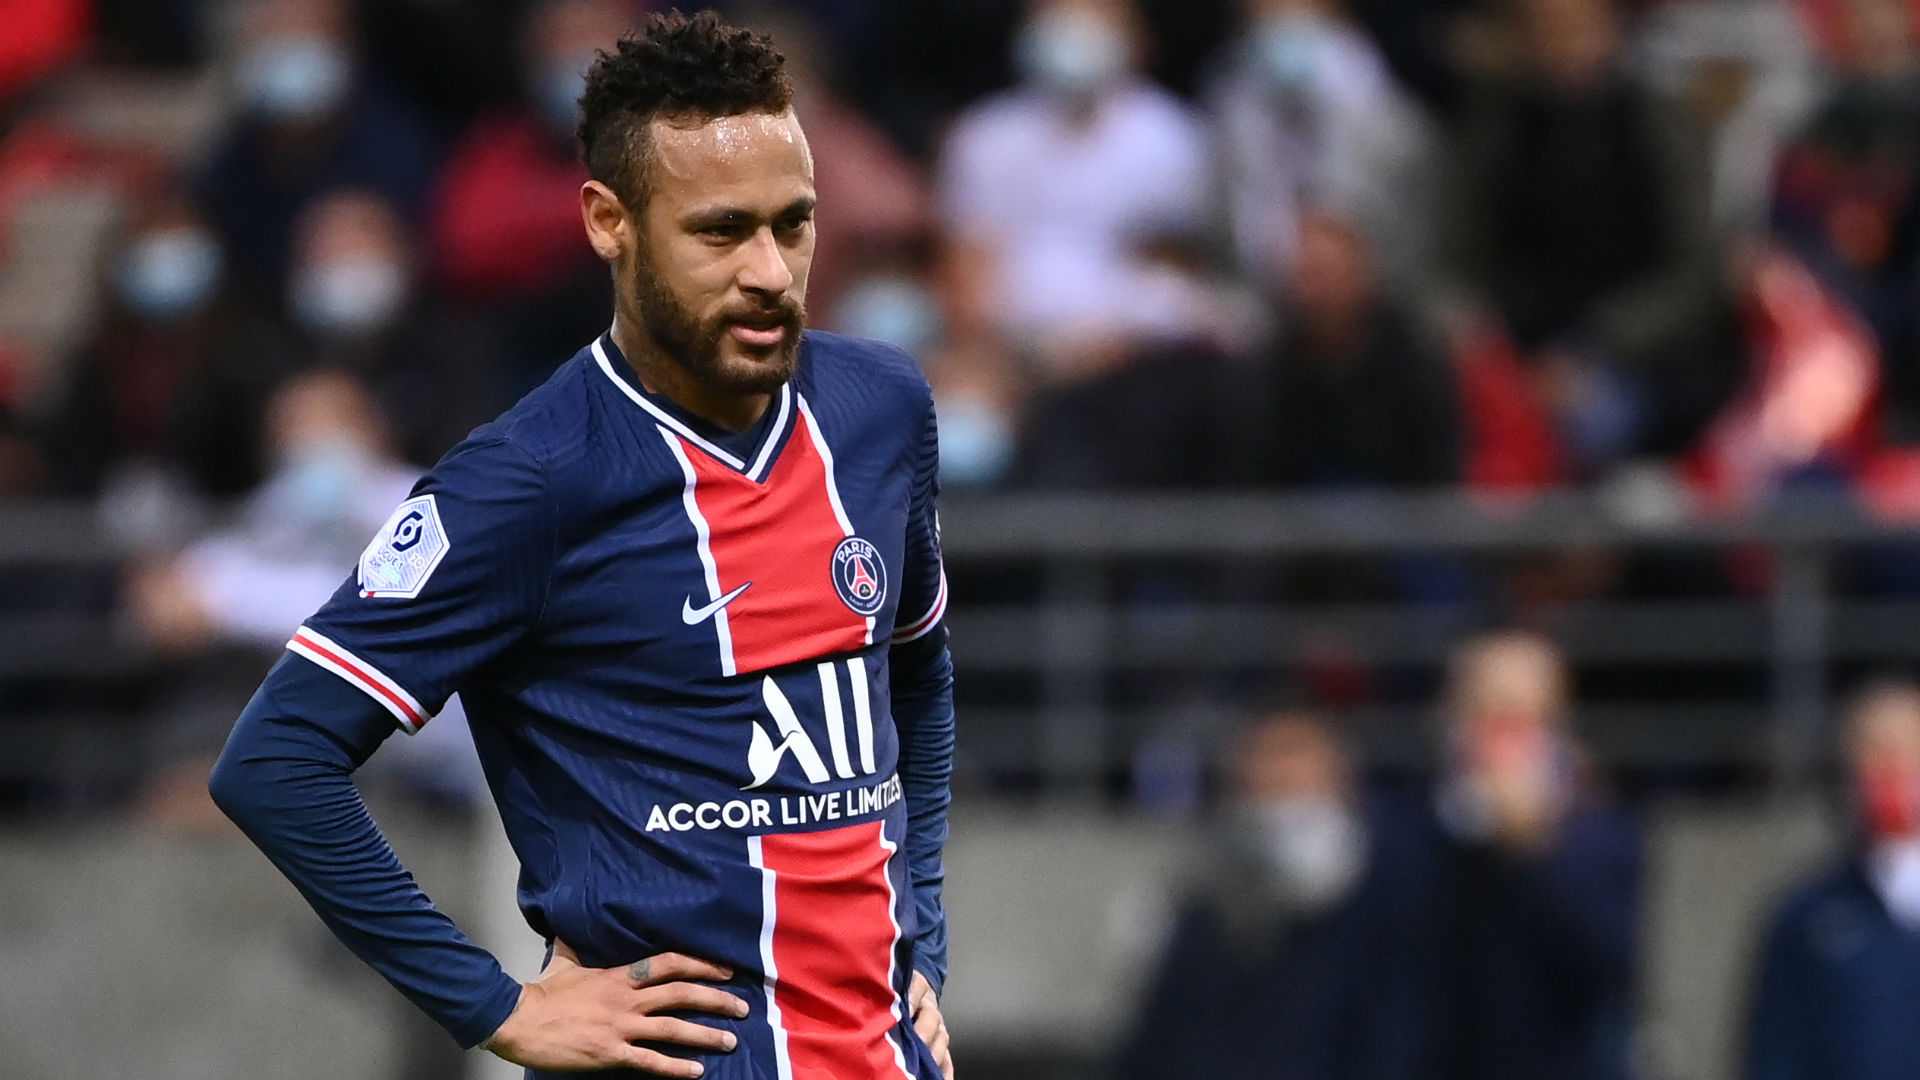 Psg Ready To Risk Neymar In Key Champions League Clash Despite Brazilian Being Far From Match Fit Goal Com